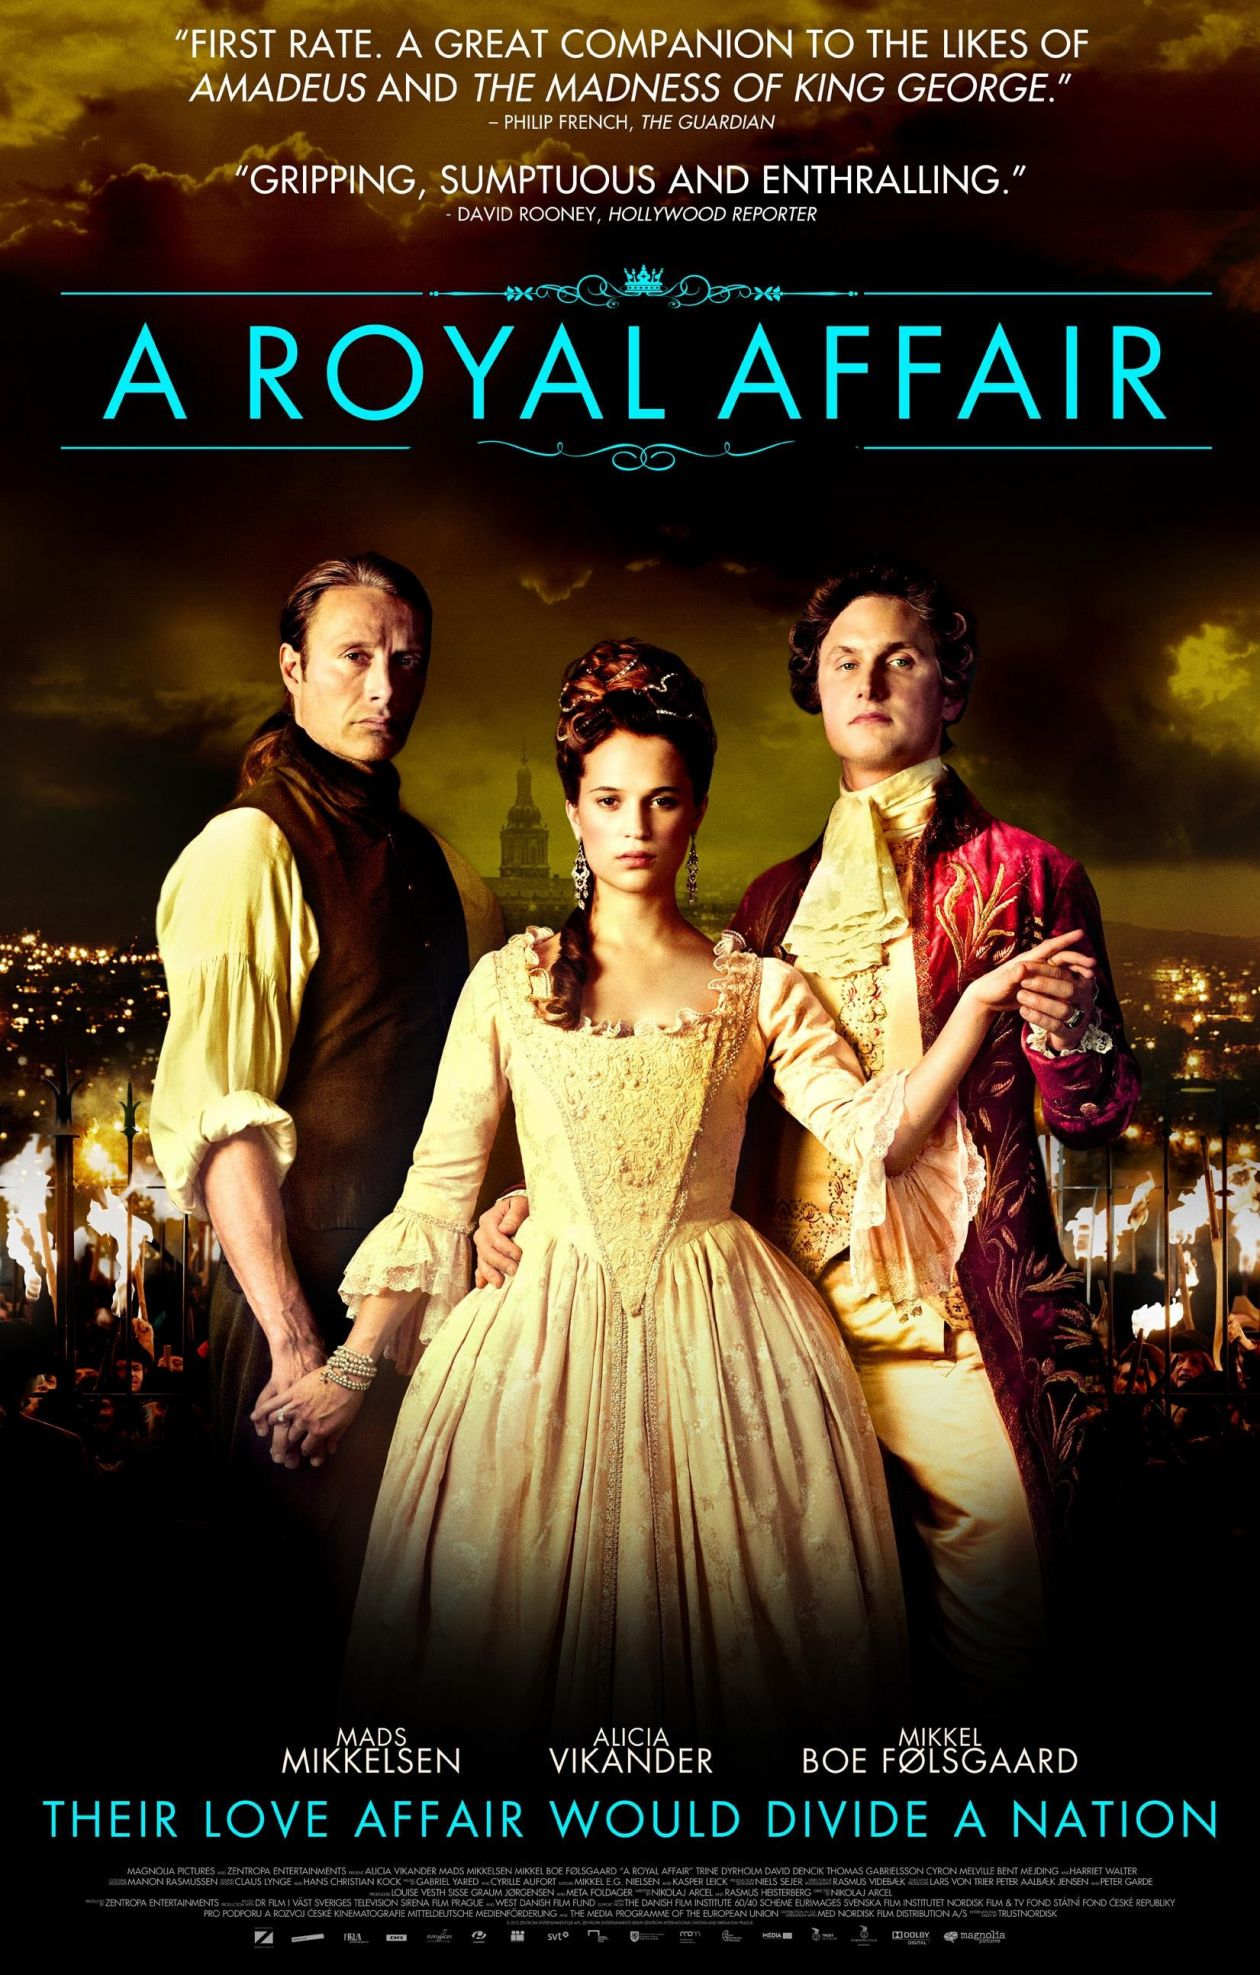 Alicia Vikander actress / A Royal Affair / Nikolaj Arcel 2012 Movie Poster Affiche film